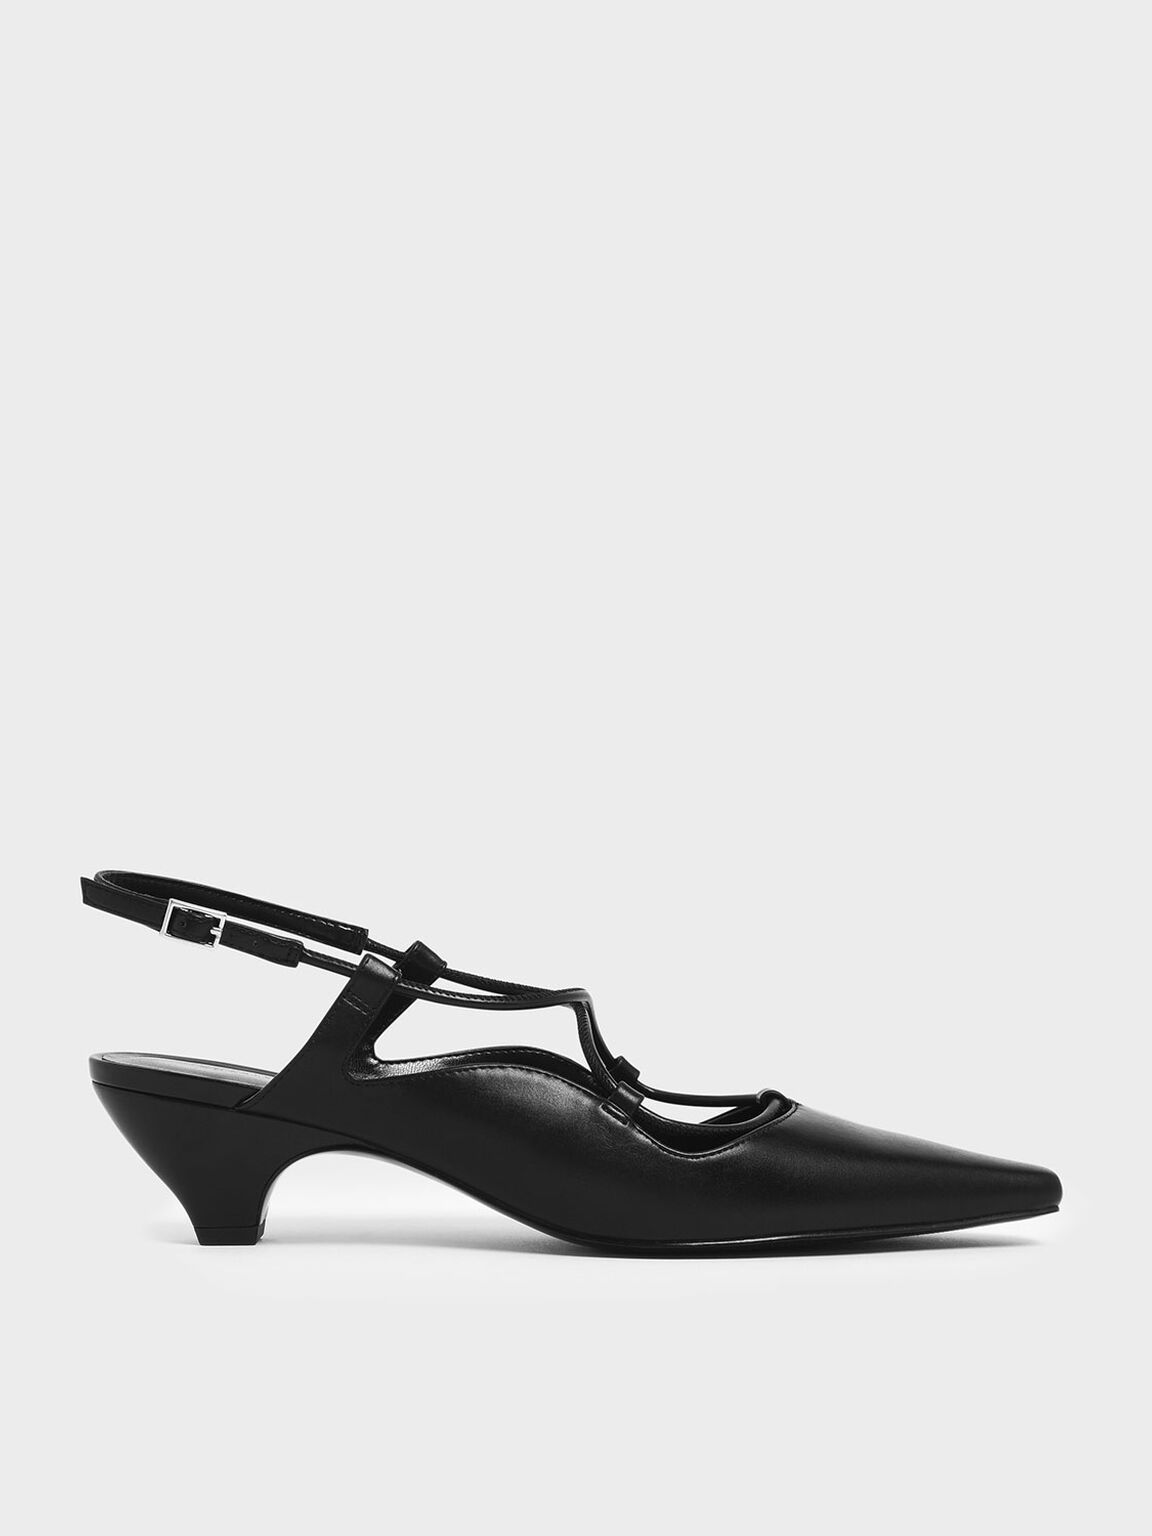 Criss Cross Slingback Kitten Block Heels, Black, hi-res